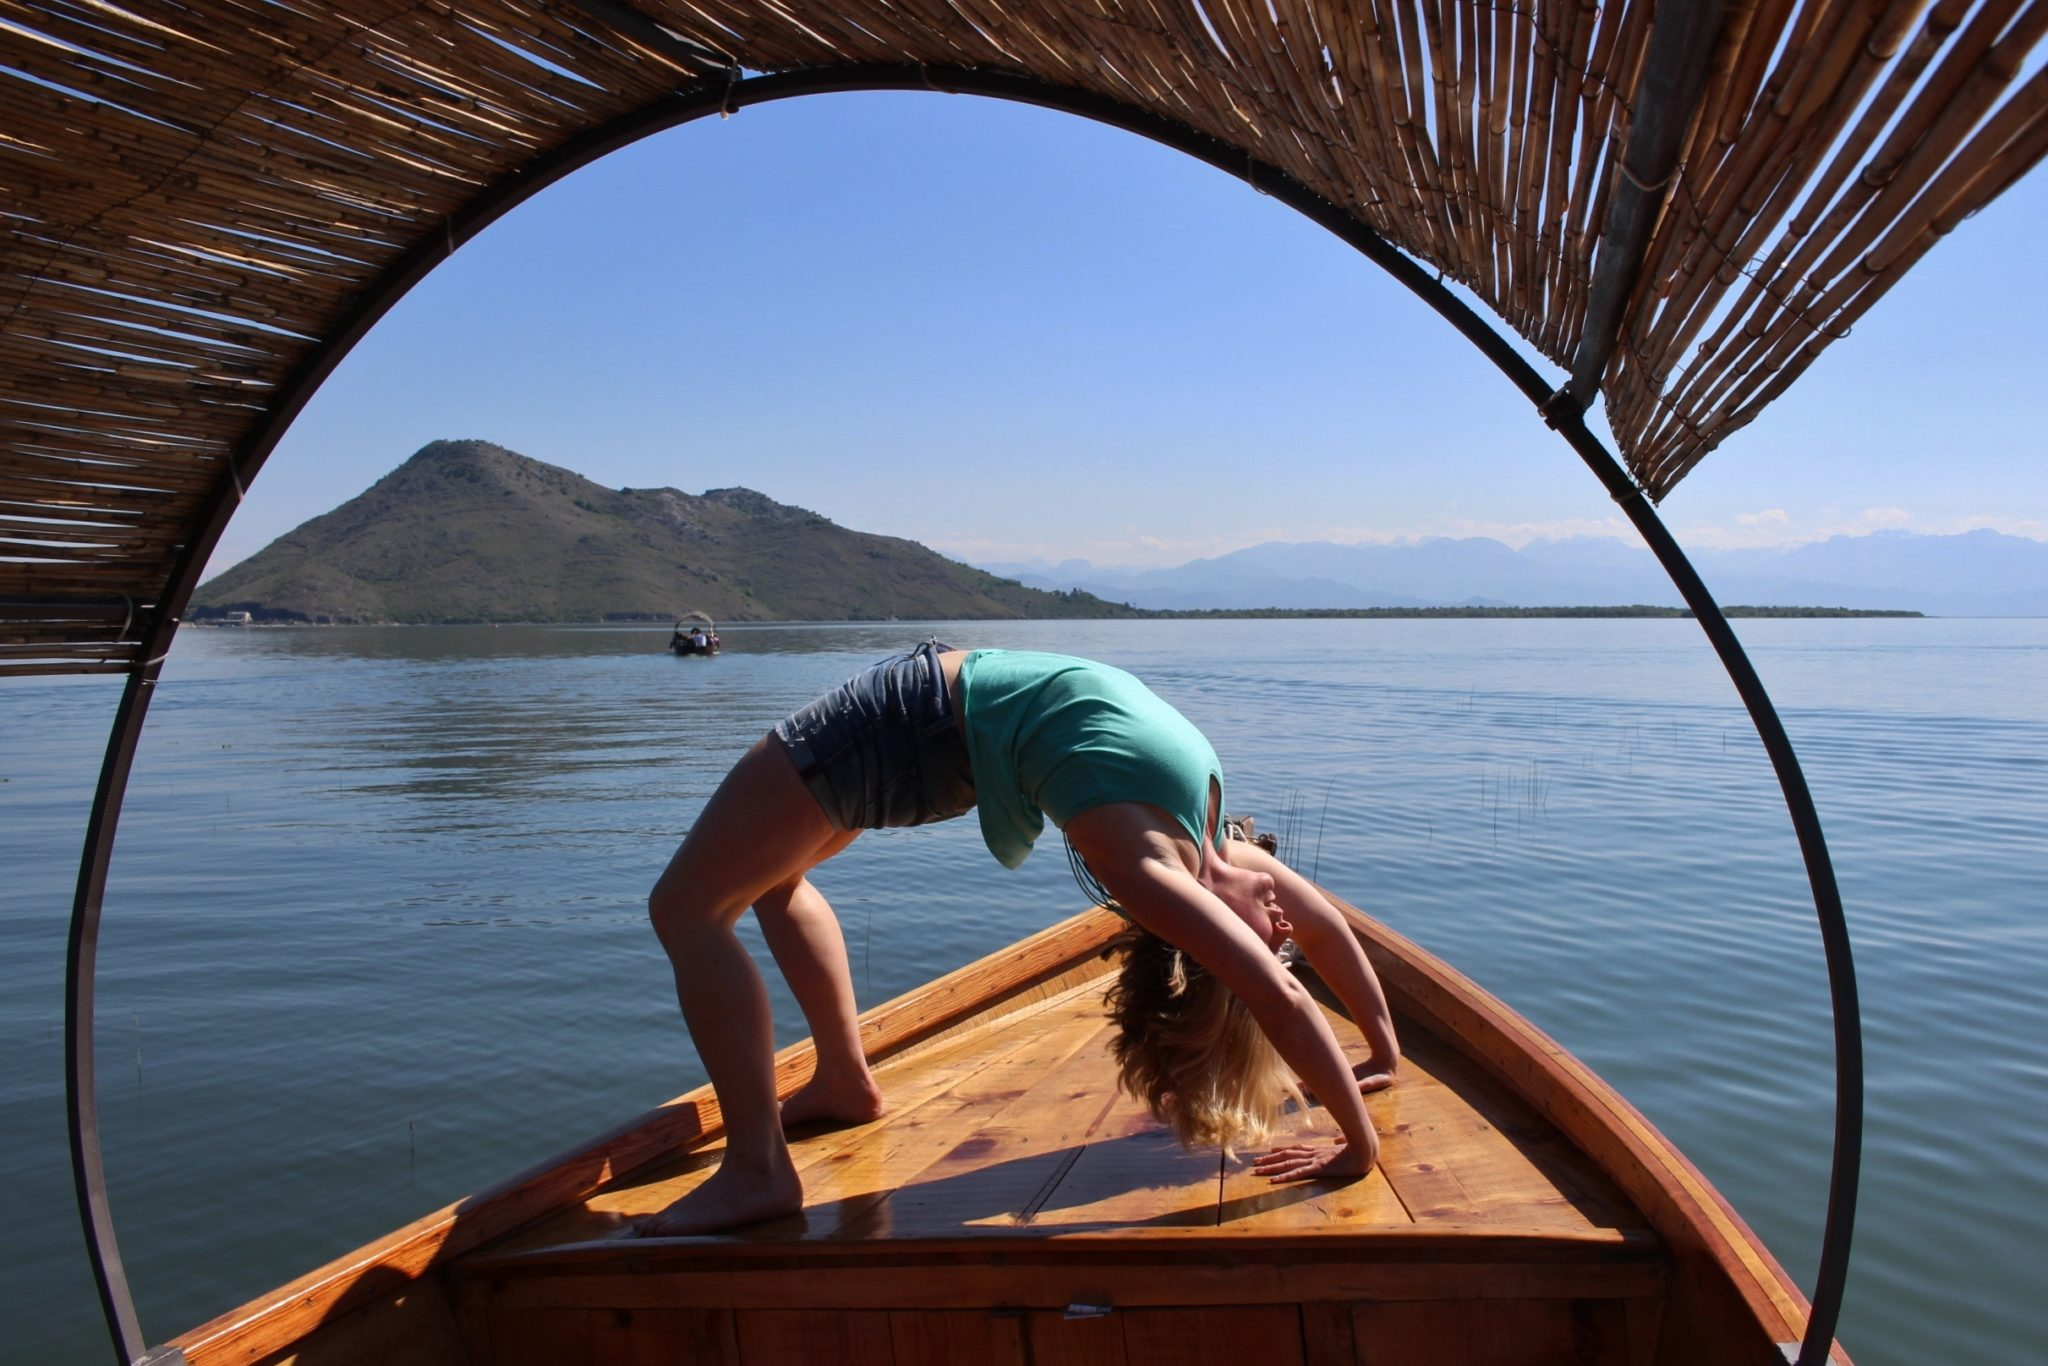 A woman on a yoga holiday in Montenegro doing a wheel pose while on a boat tour at Lake Skadar National Park on a warm sunny day